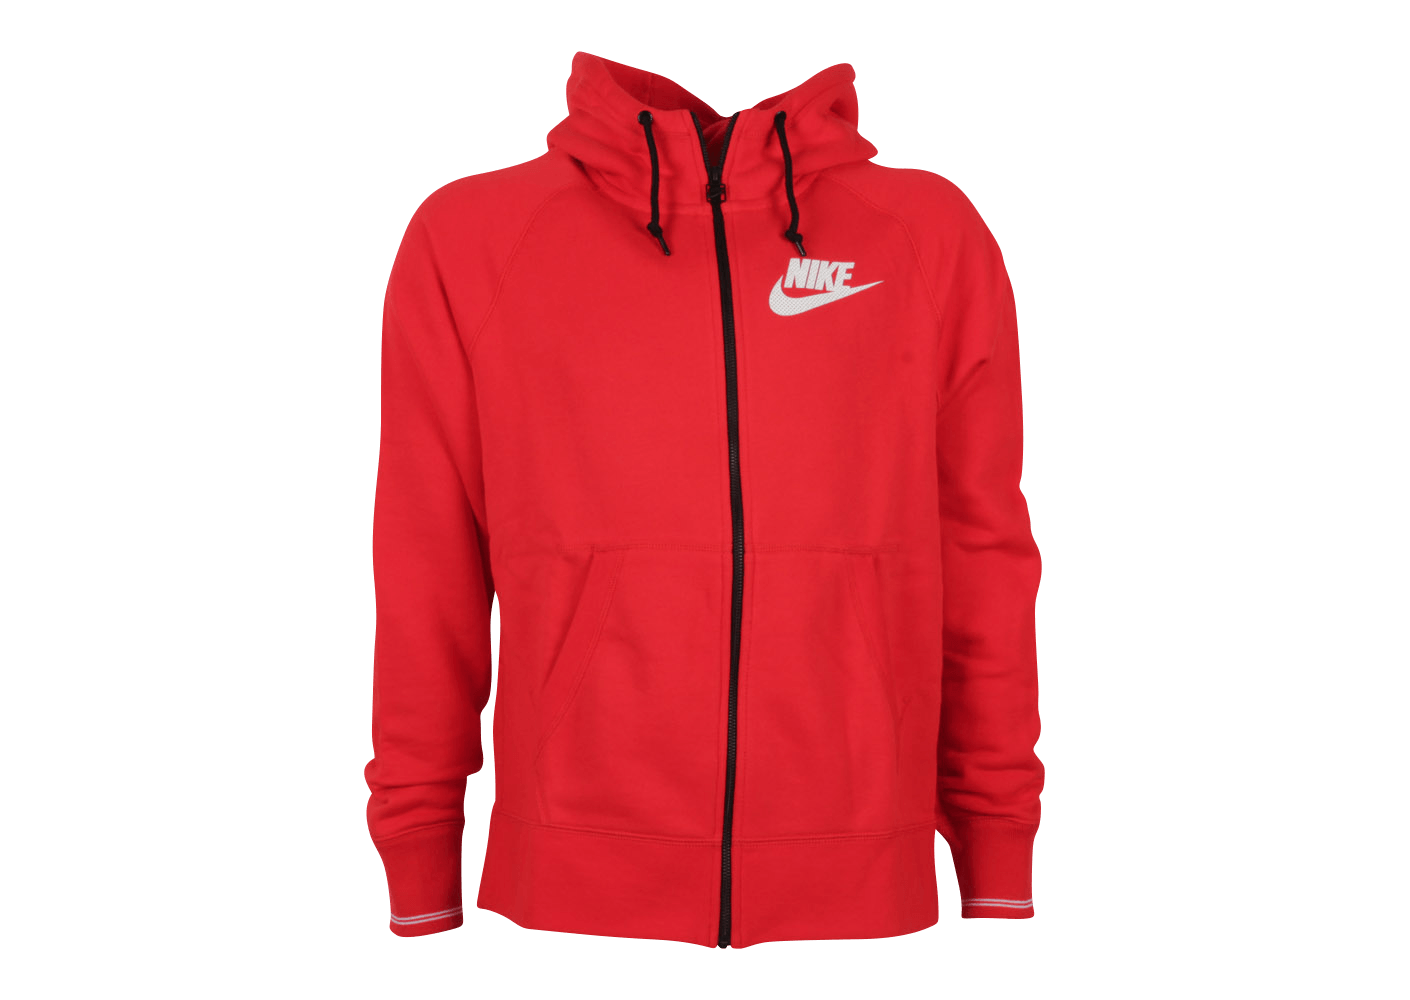 veste nike rouge nike aw77 veste a capuche en polaire pour homme rouge rouge xl. Black Bedroom Furniture Sets. Home Design Ideas